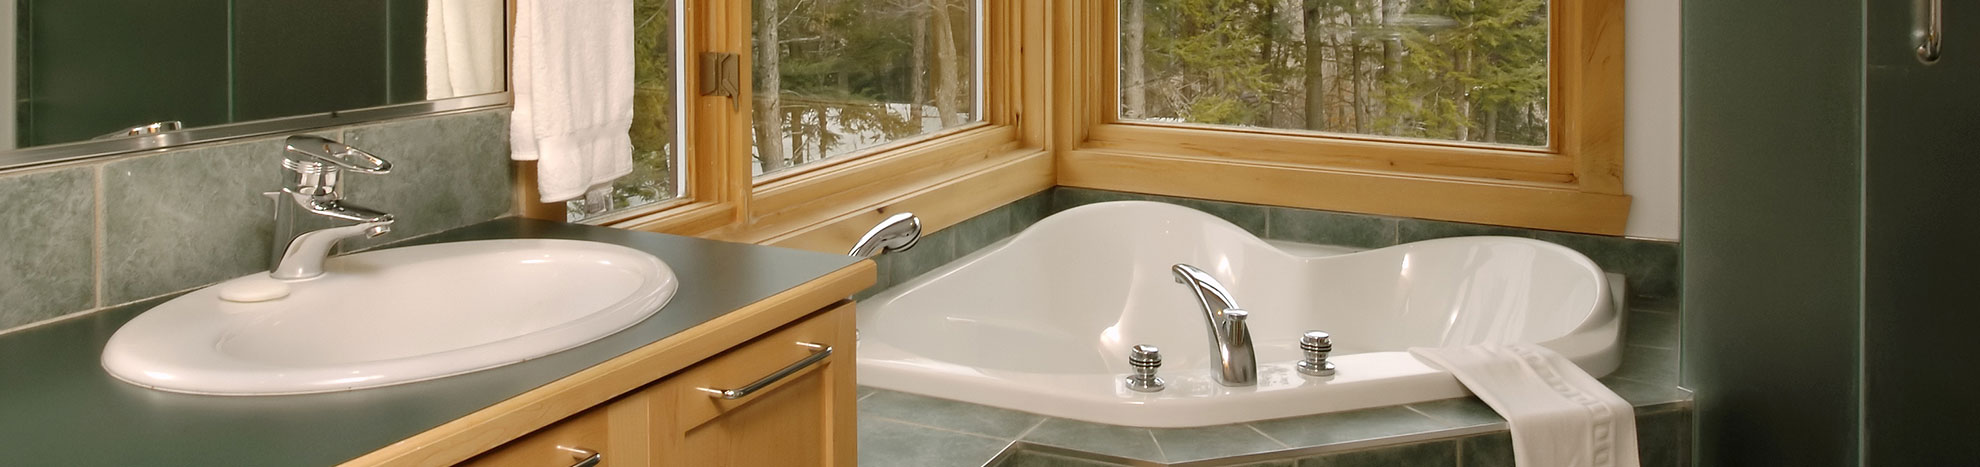 Bathroom Design and Remodeling in Cleveland Ohio